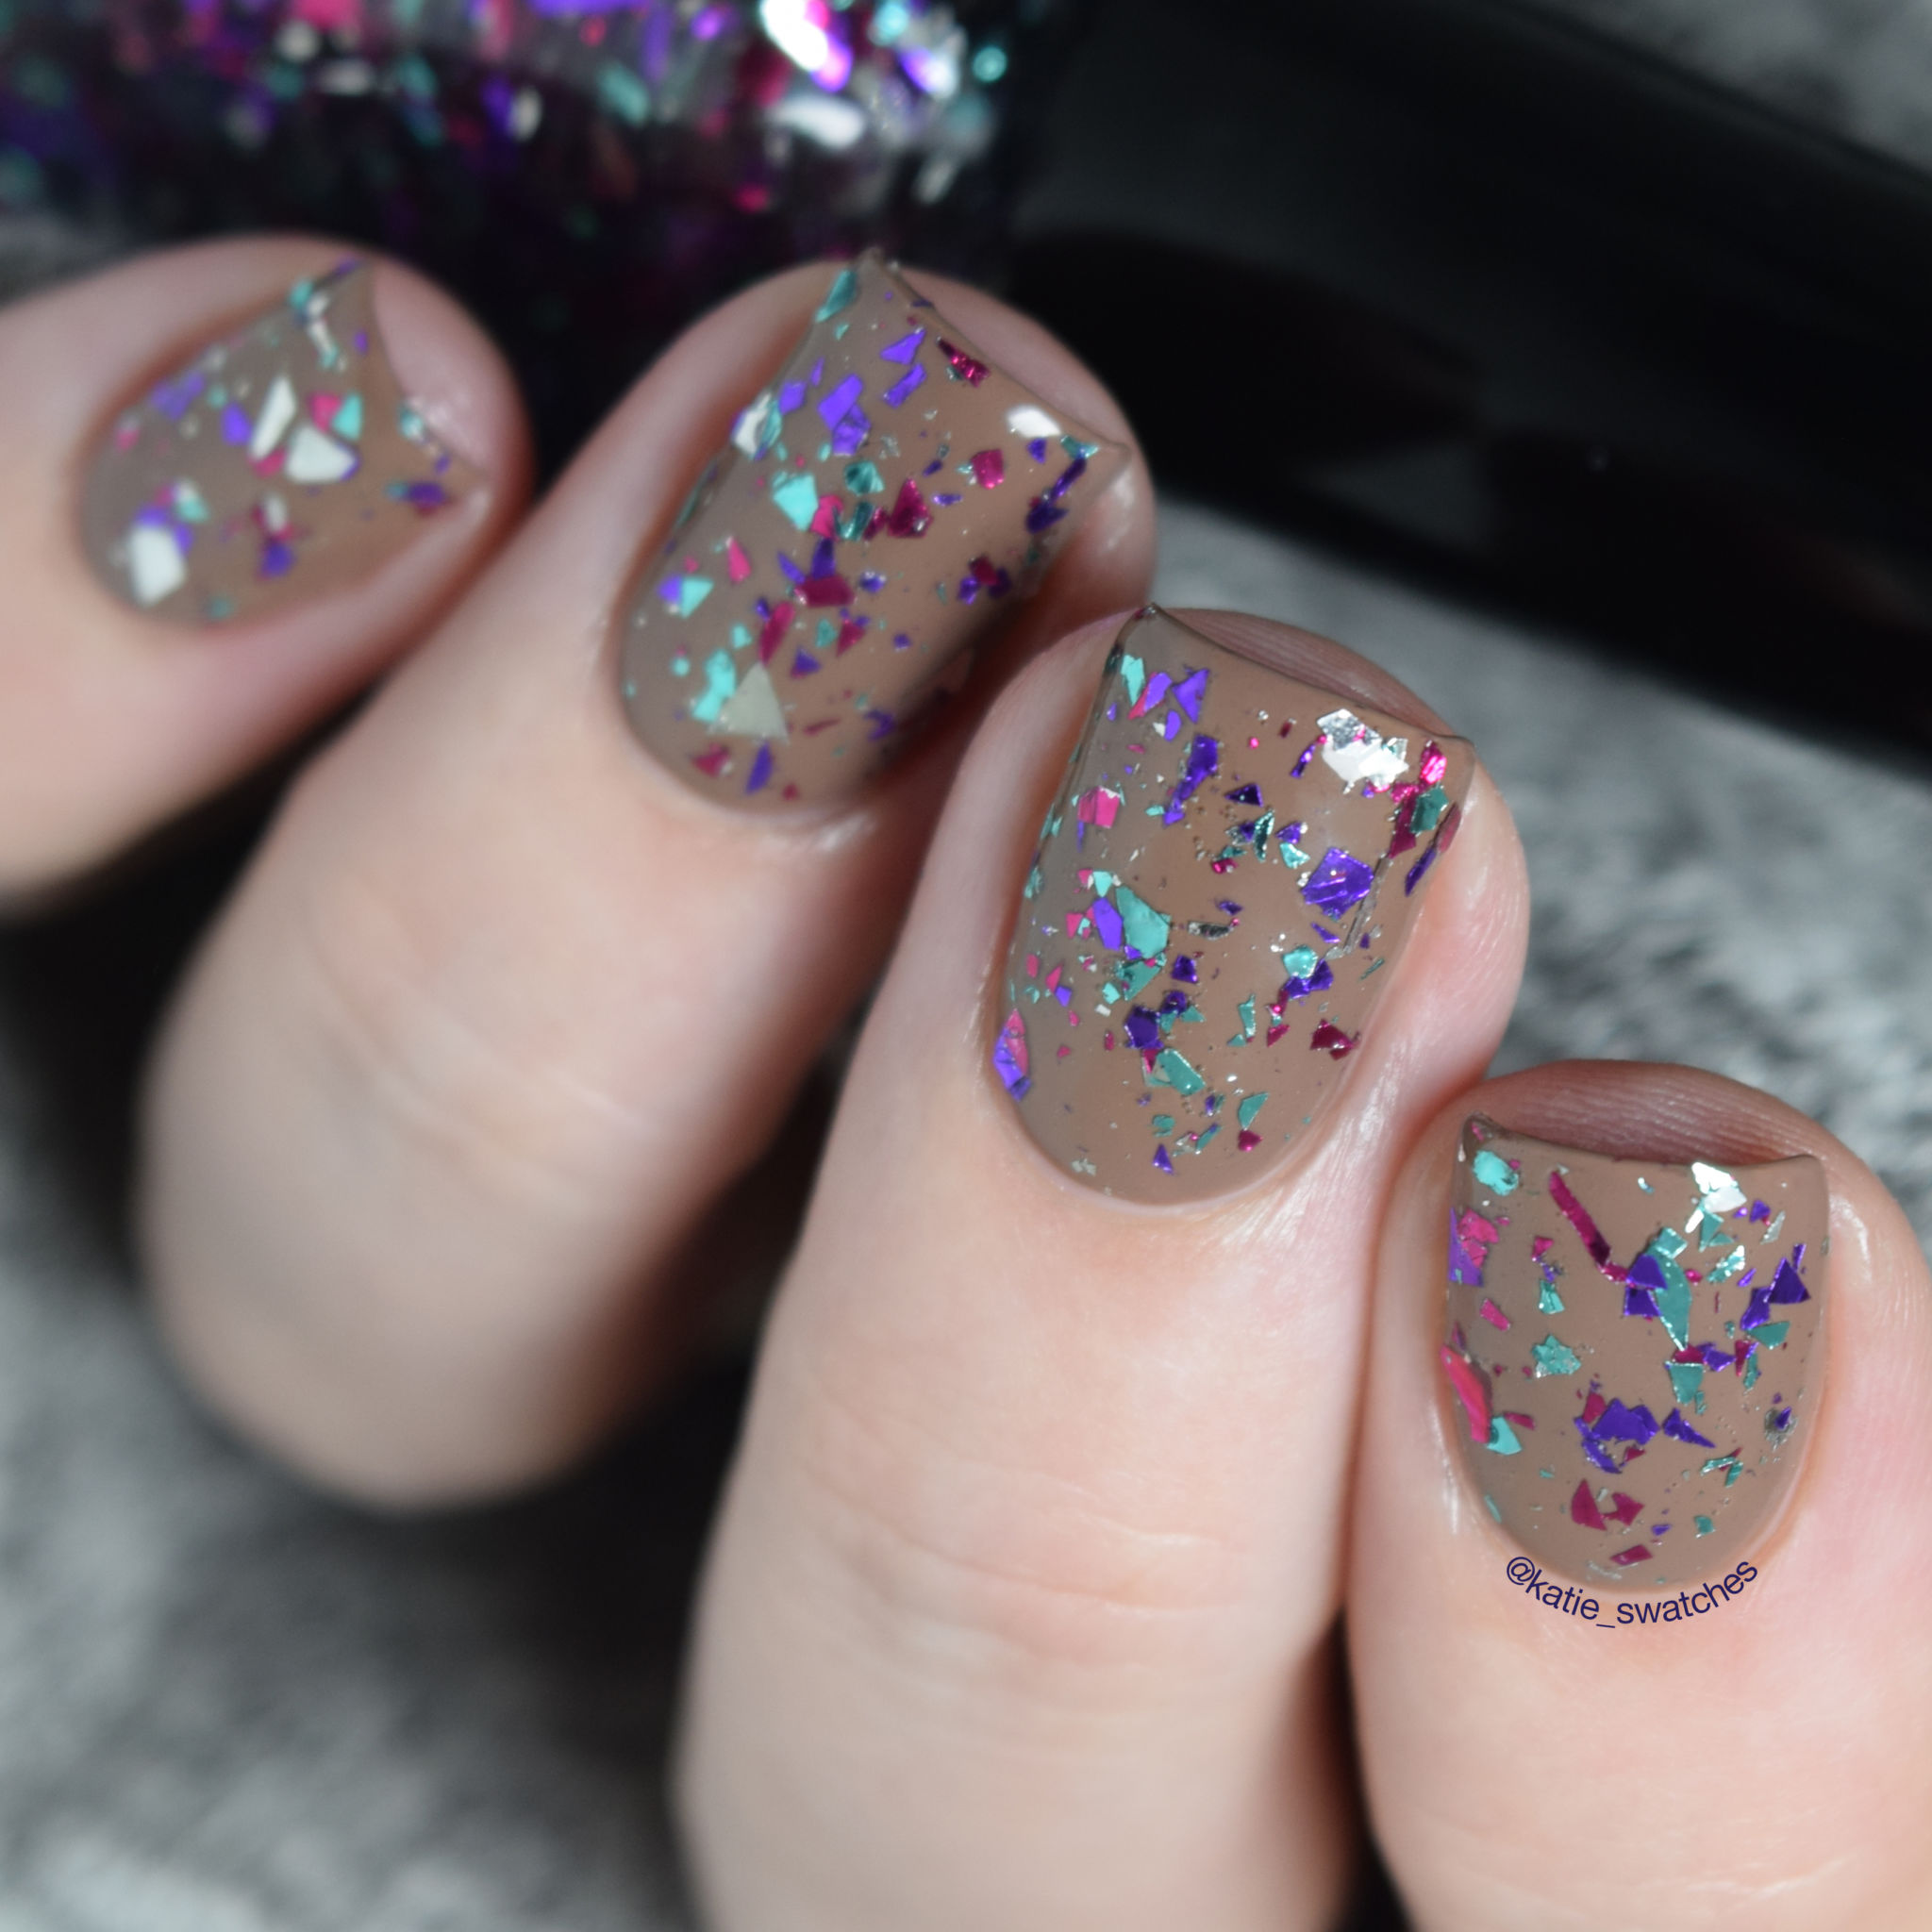 Lac Attack Muggles layered over Chanel Particuliere nail polish swatch - Harlow & Co. Exclusive - multi-coloured shard glitter nail polish topper